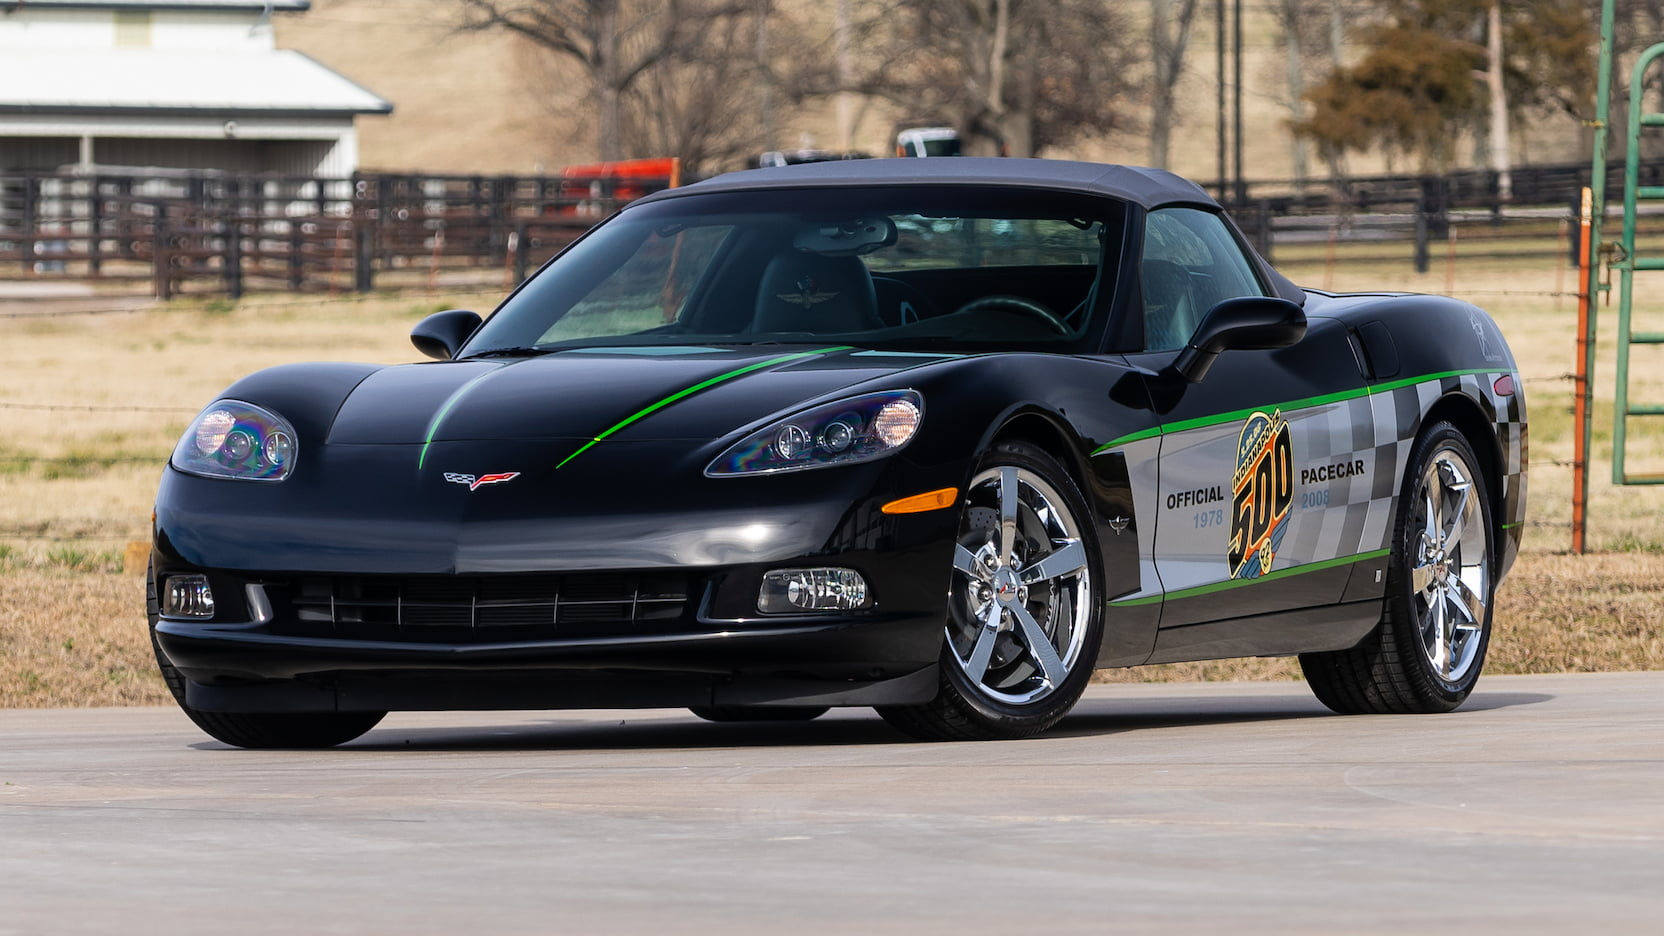 2008 Chevrolet Corvette Pace Car Edition Convertible